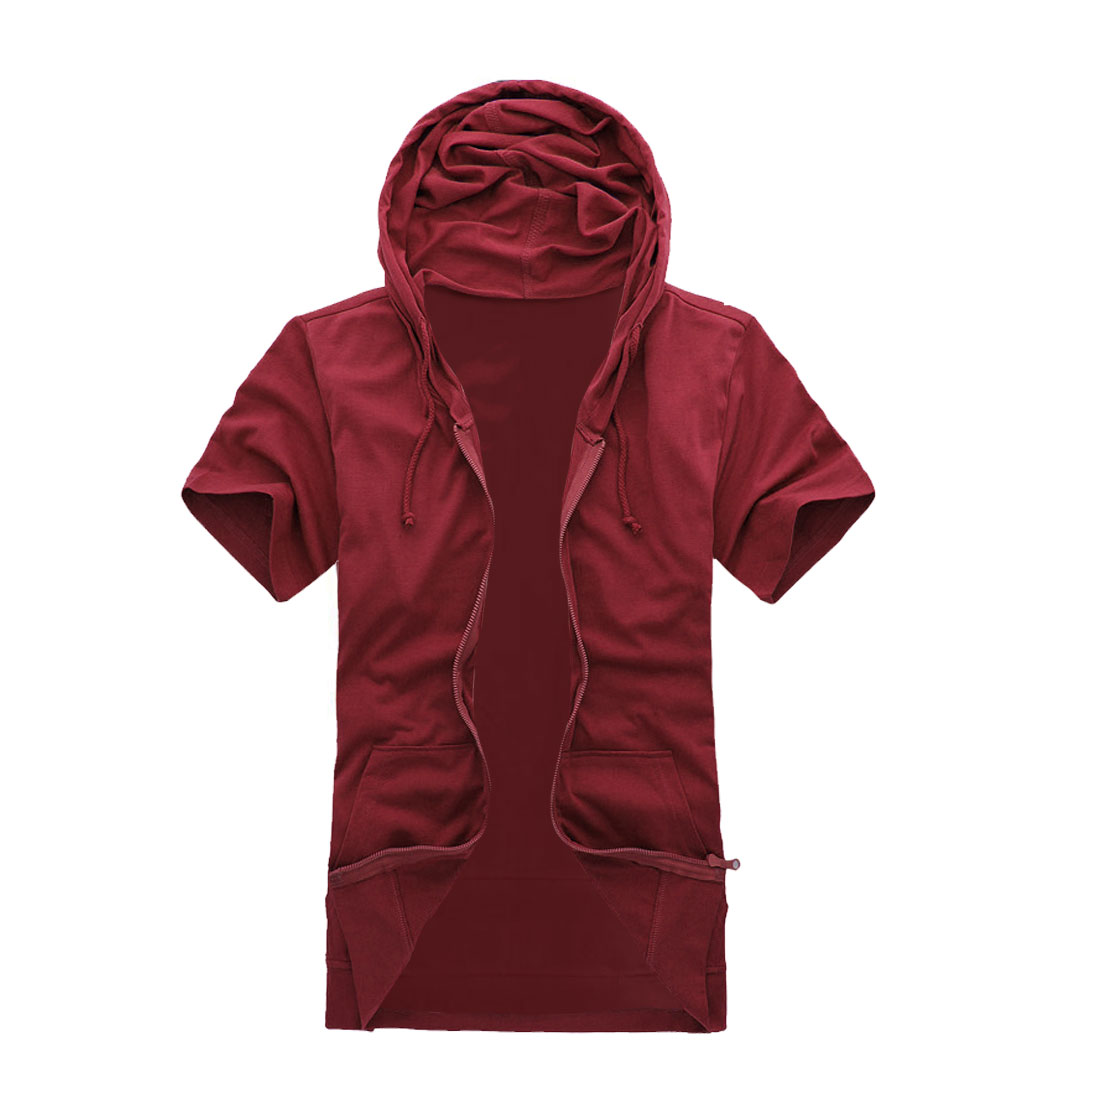 Mens Kangaroo Pocket Design Short Sleeves Burgundy Hoodie M